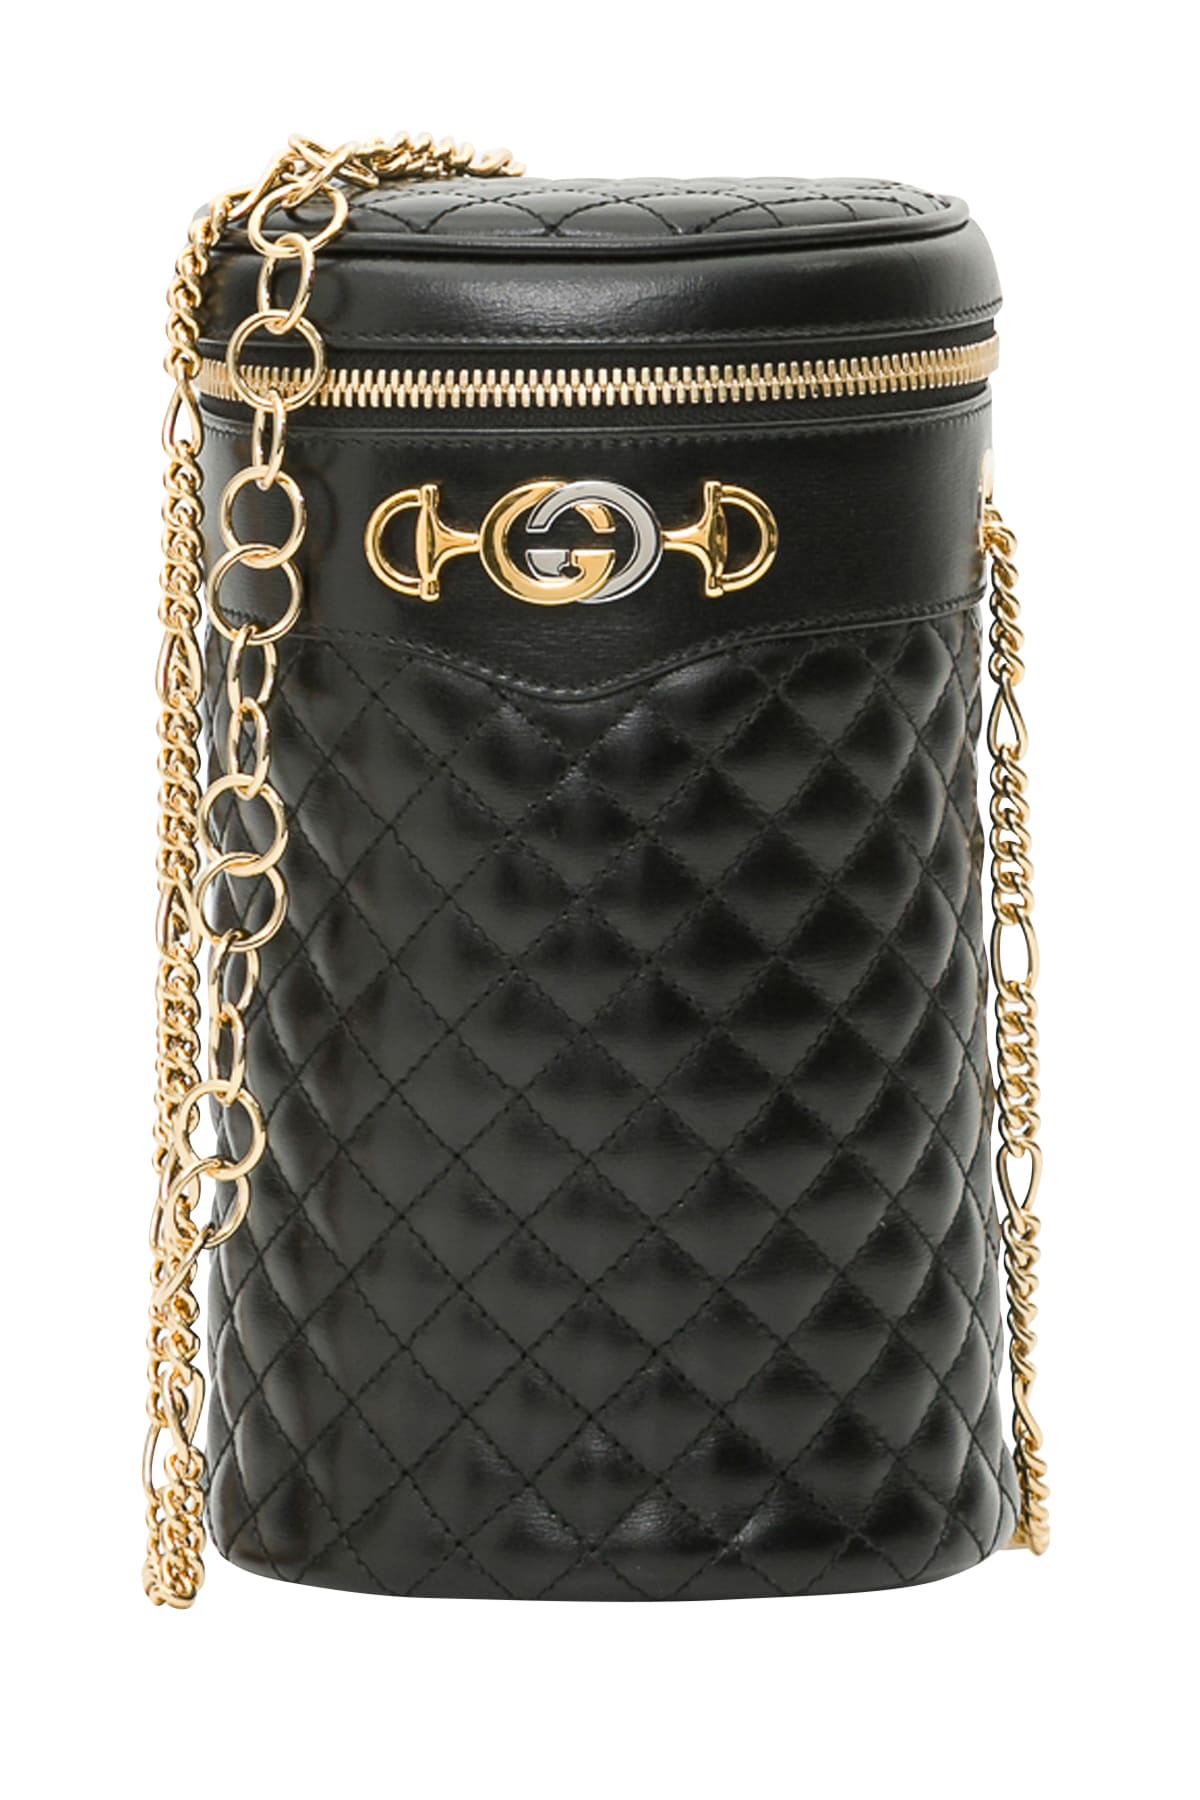 f949028b Buy gucci bags for women - Best women's gucci bags shop - Cools.com